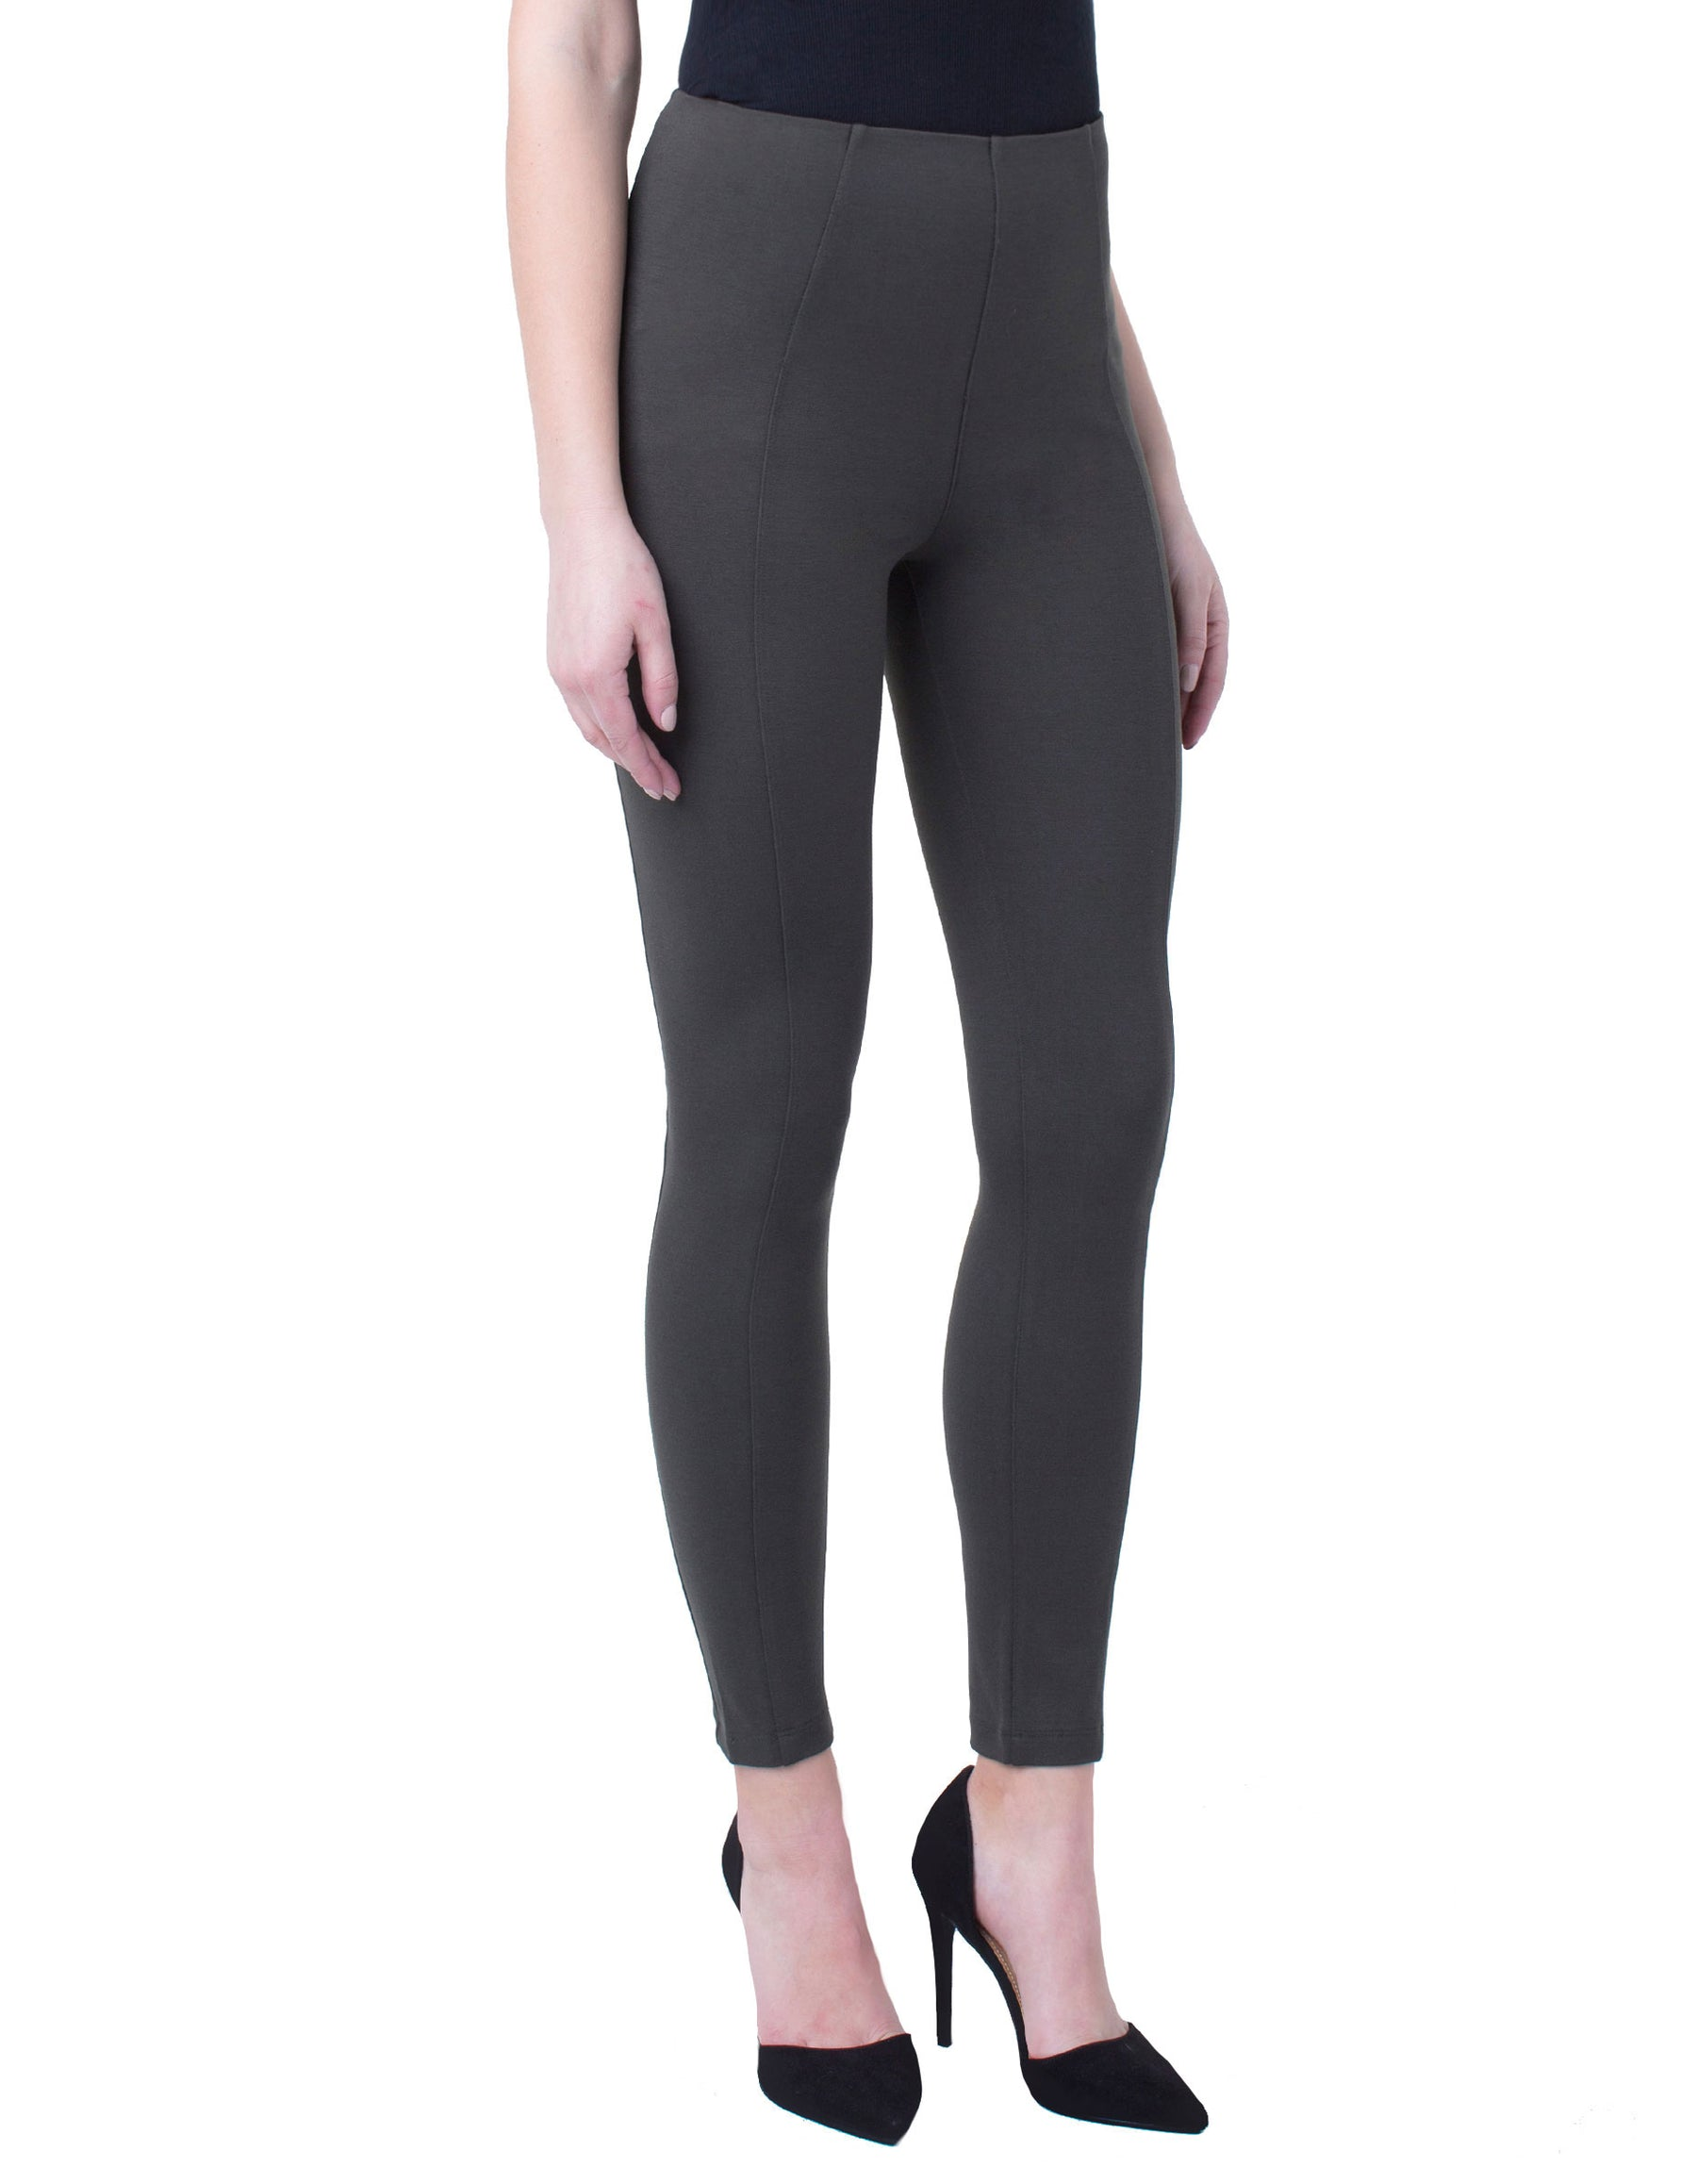 ef47dcce1fc REESE HIGH RISE ANKLE LEGGING SUPER STRETCH PONTE